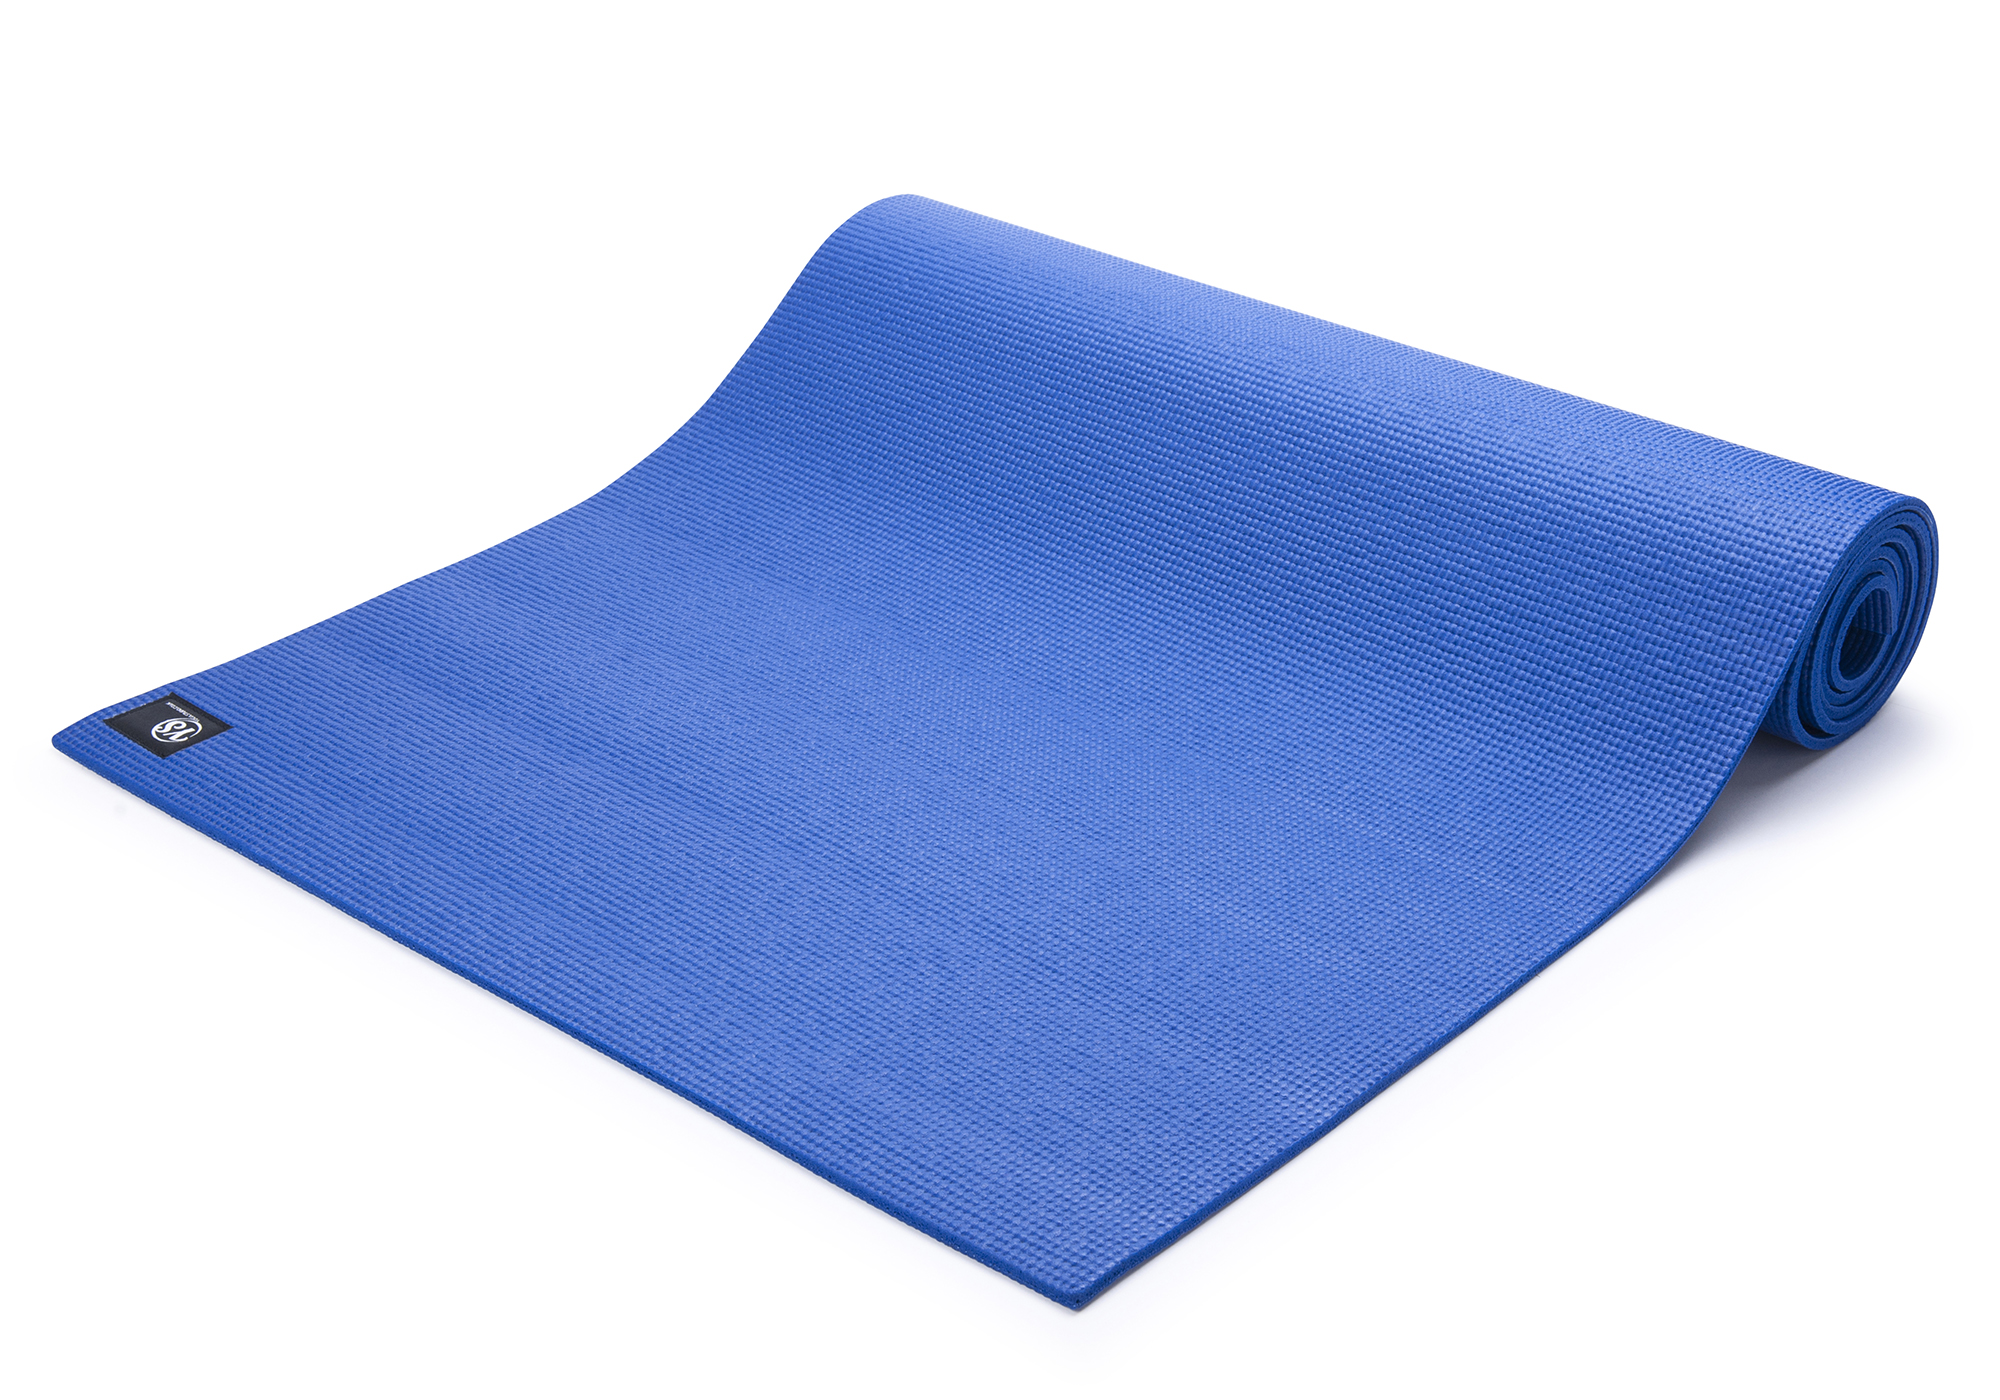 amazon types and tear exercises mats mat perfect workout of for pogamat thick all out large work yoga anti com x exercise dp